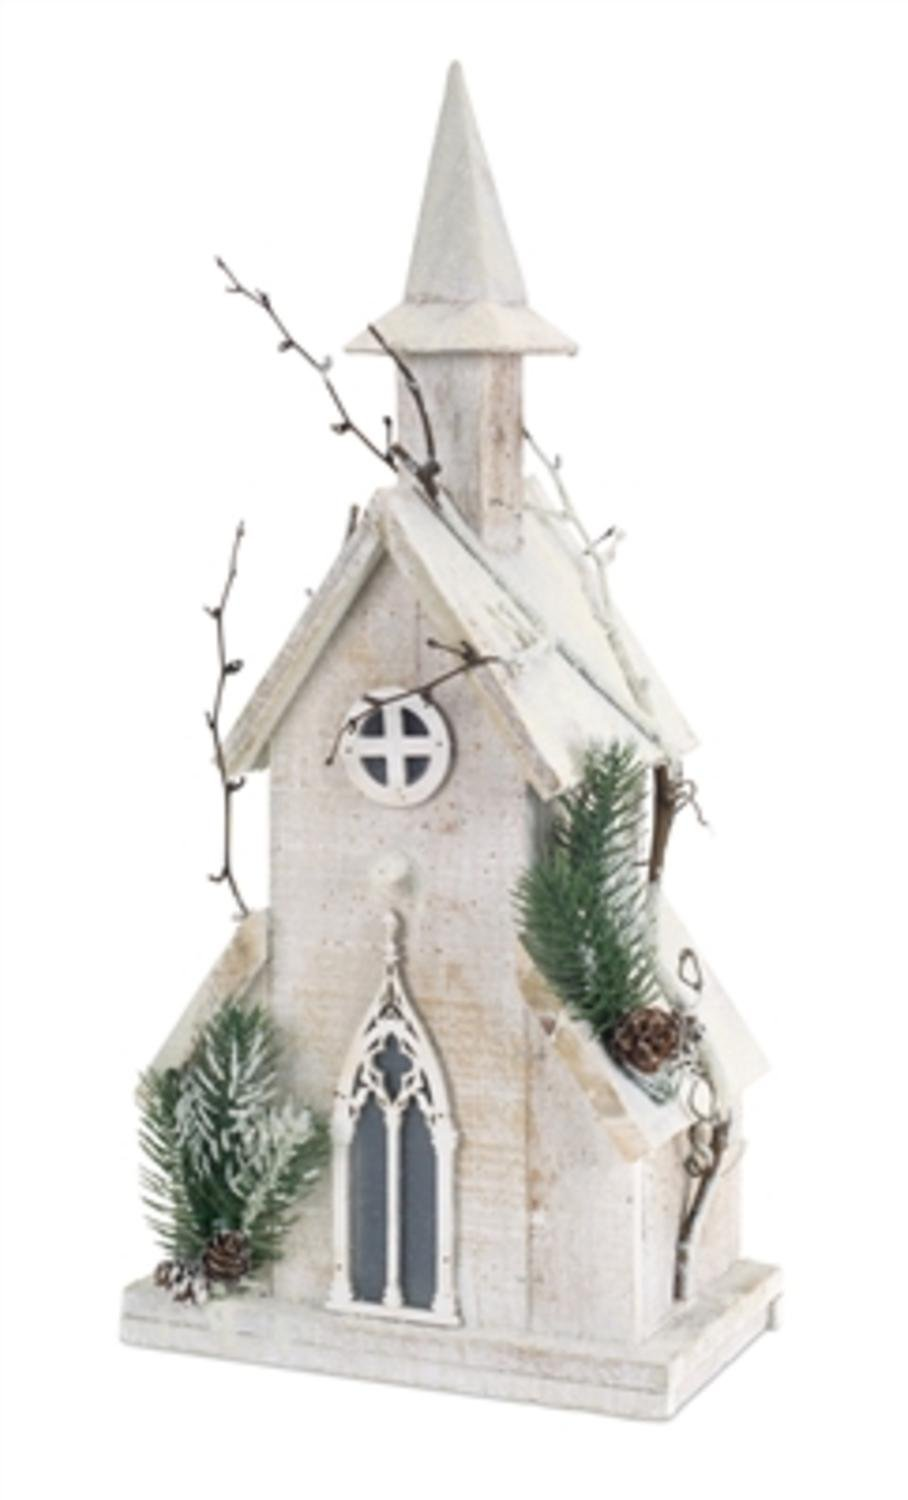 Pack of 2 Pre-Lit Wooden Church with Pine and Twigs Christmas Decorations 19'' - Clear LED Lights